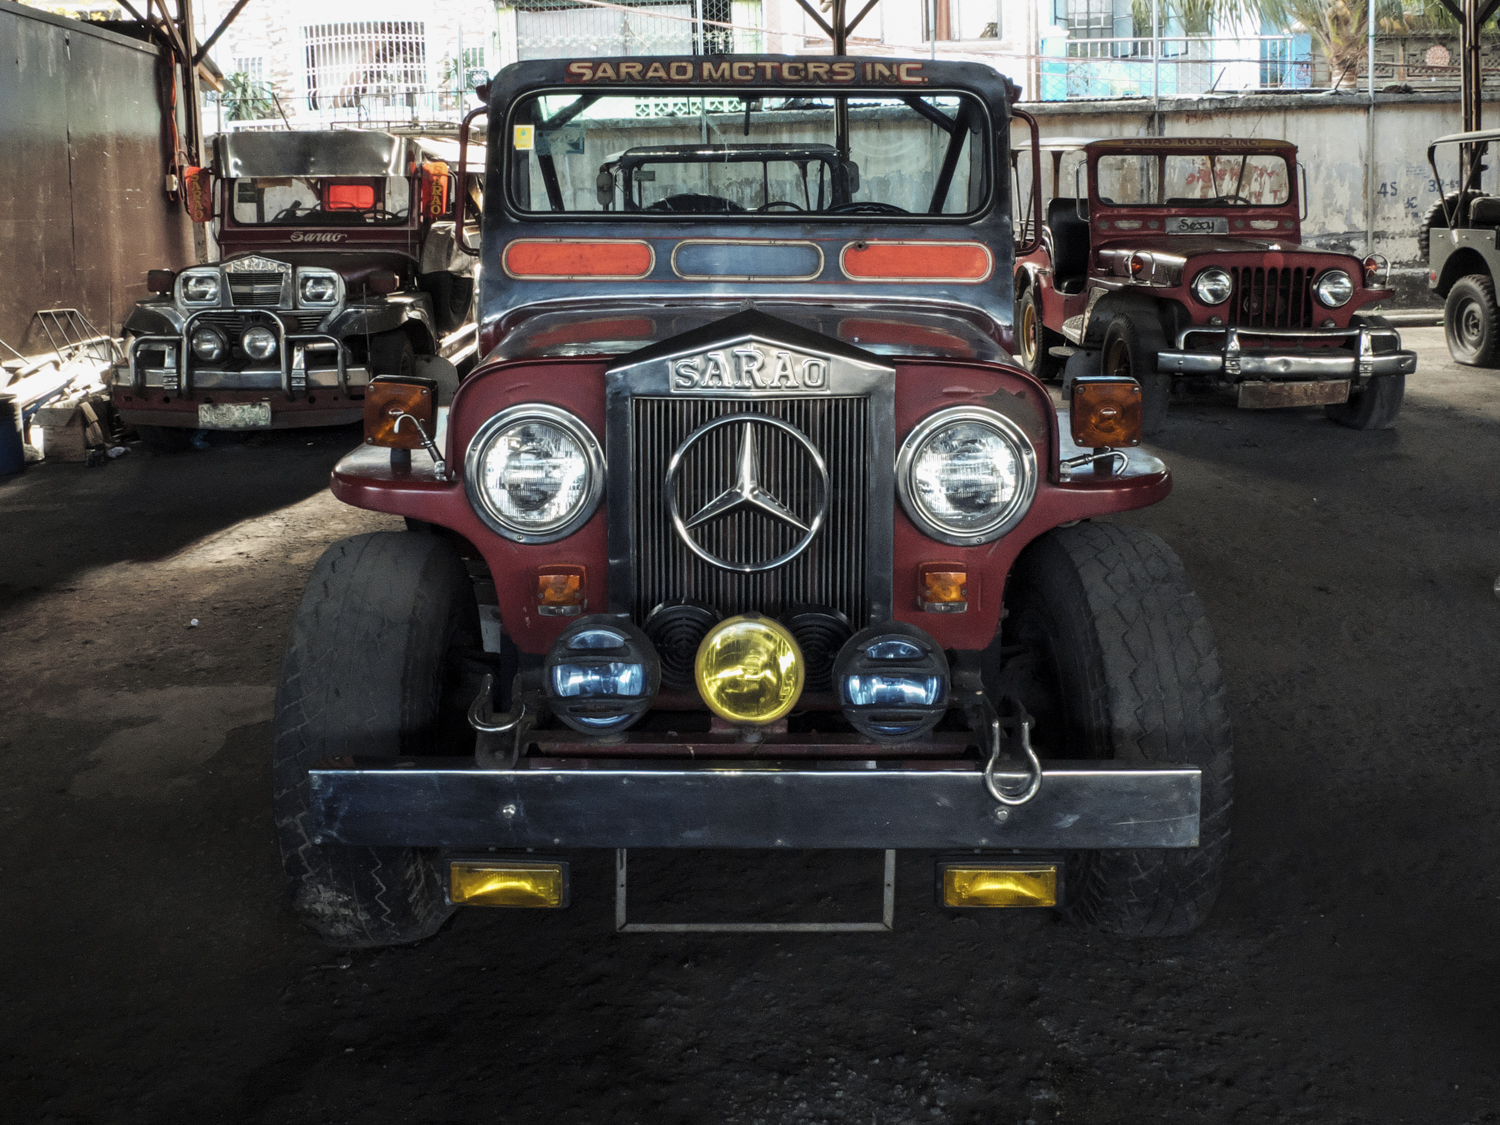 The word Sarao has become synonymous with the Jeepney.